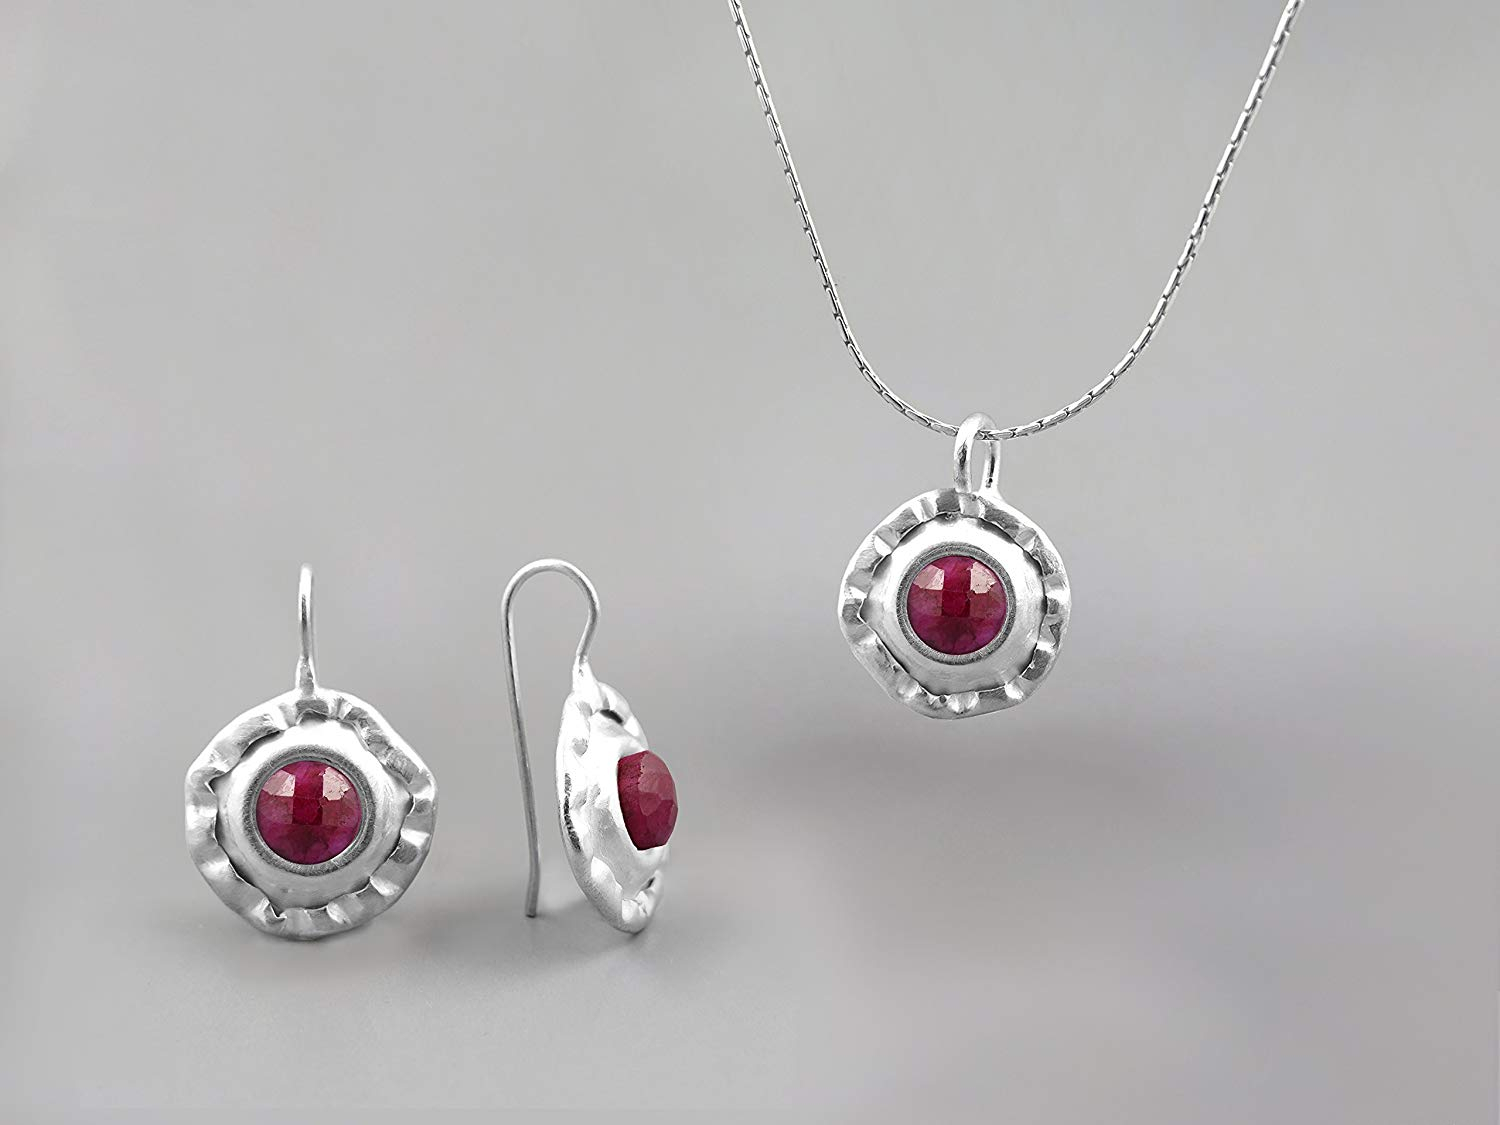 Cheap Ruby Jewelry Store, Find Ruby Jewelry Store Deals On Line At In Most Recently Released July Droplet Pendant, Synthetic Ruby Necklaces (View 15 of 25)